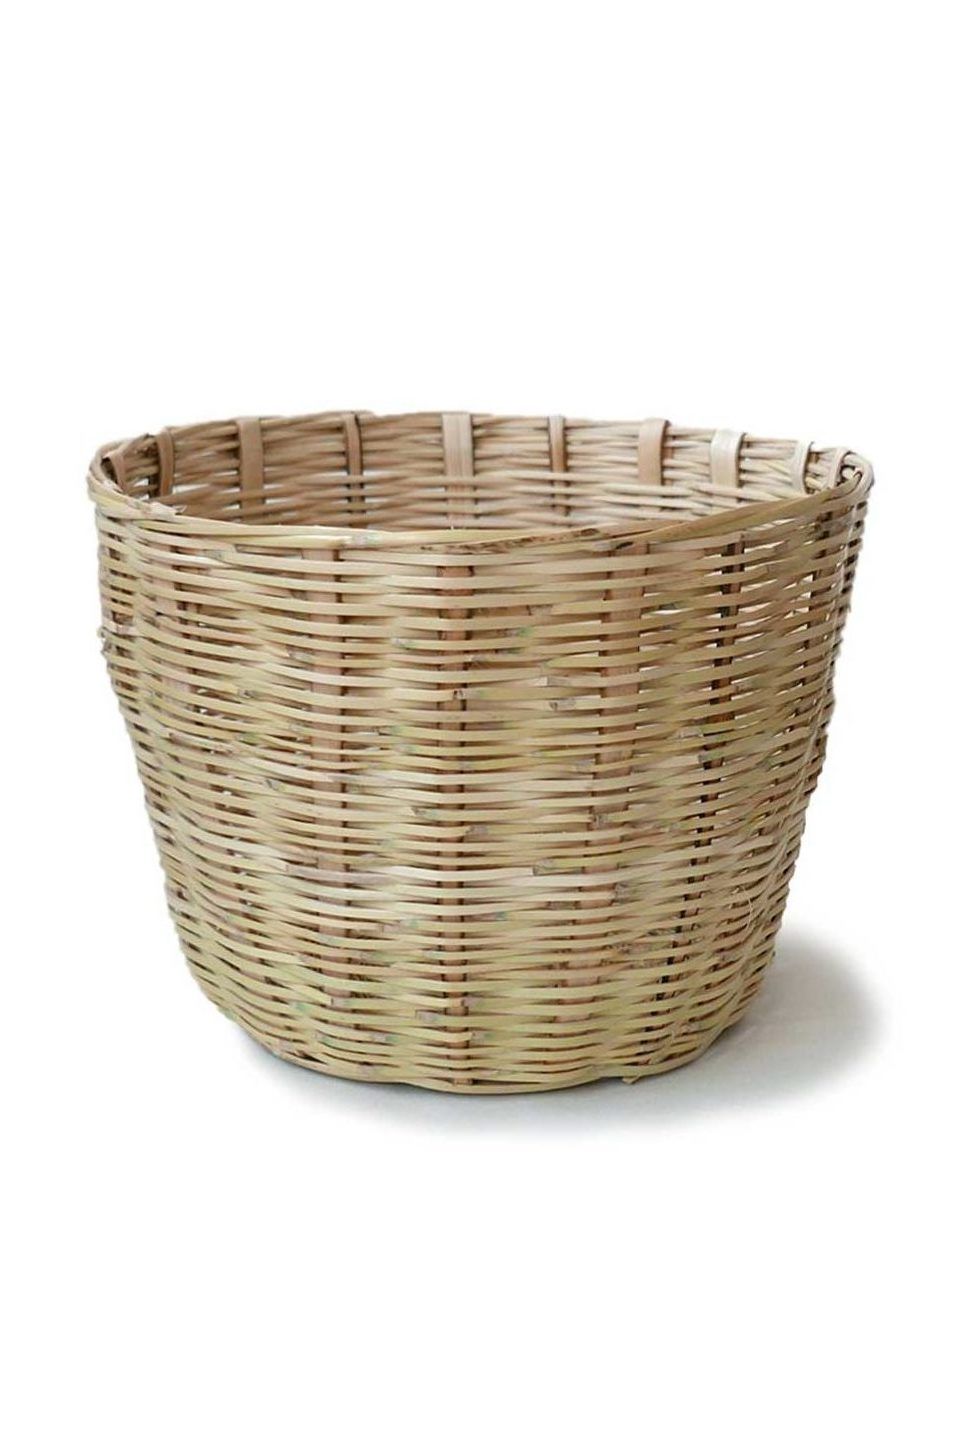 Handwoven Mexican Large Carrizo Storage Basket - www.nidocollective.com #mexicanbasket #planter #carrizobasket #storagebasket